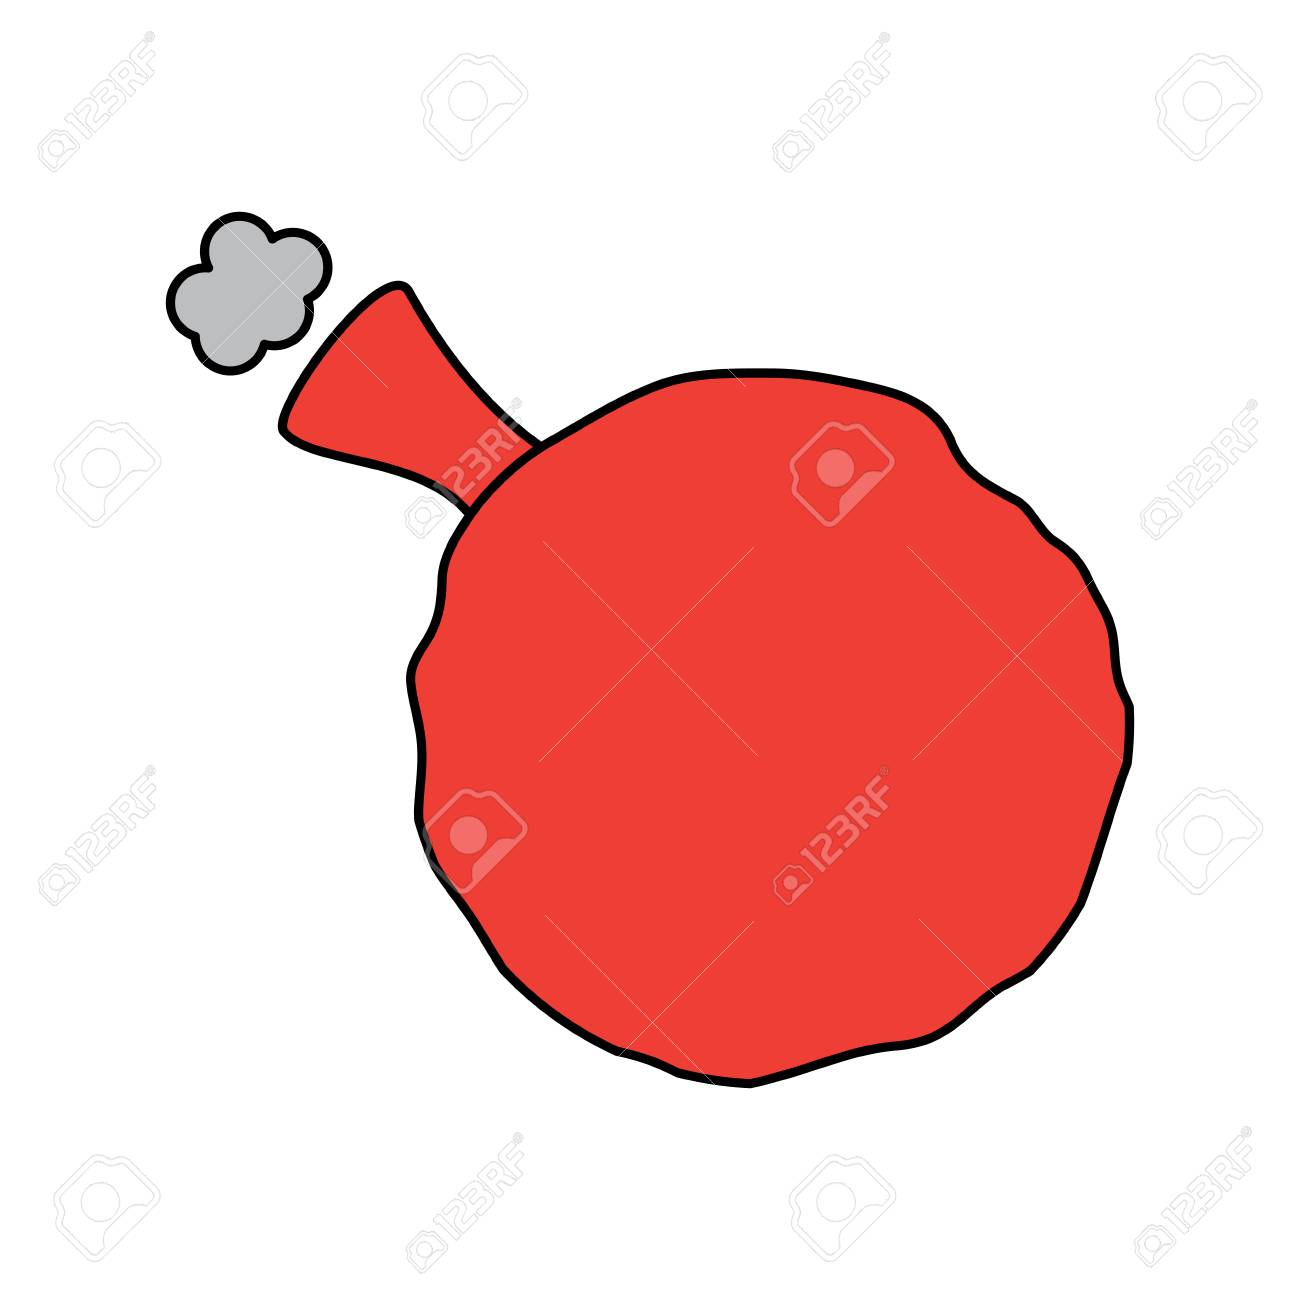 whoopee cushion prank humor rubber vector illustration.